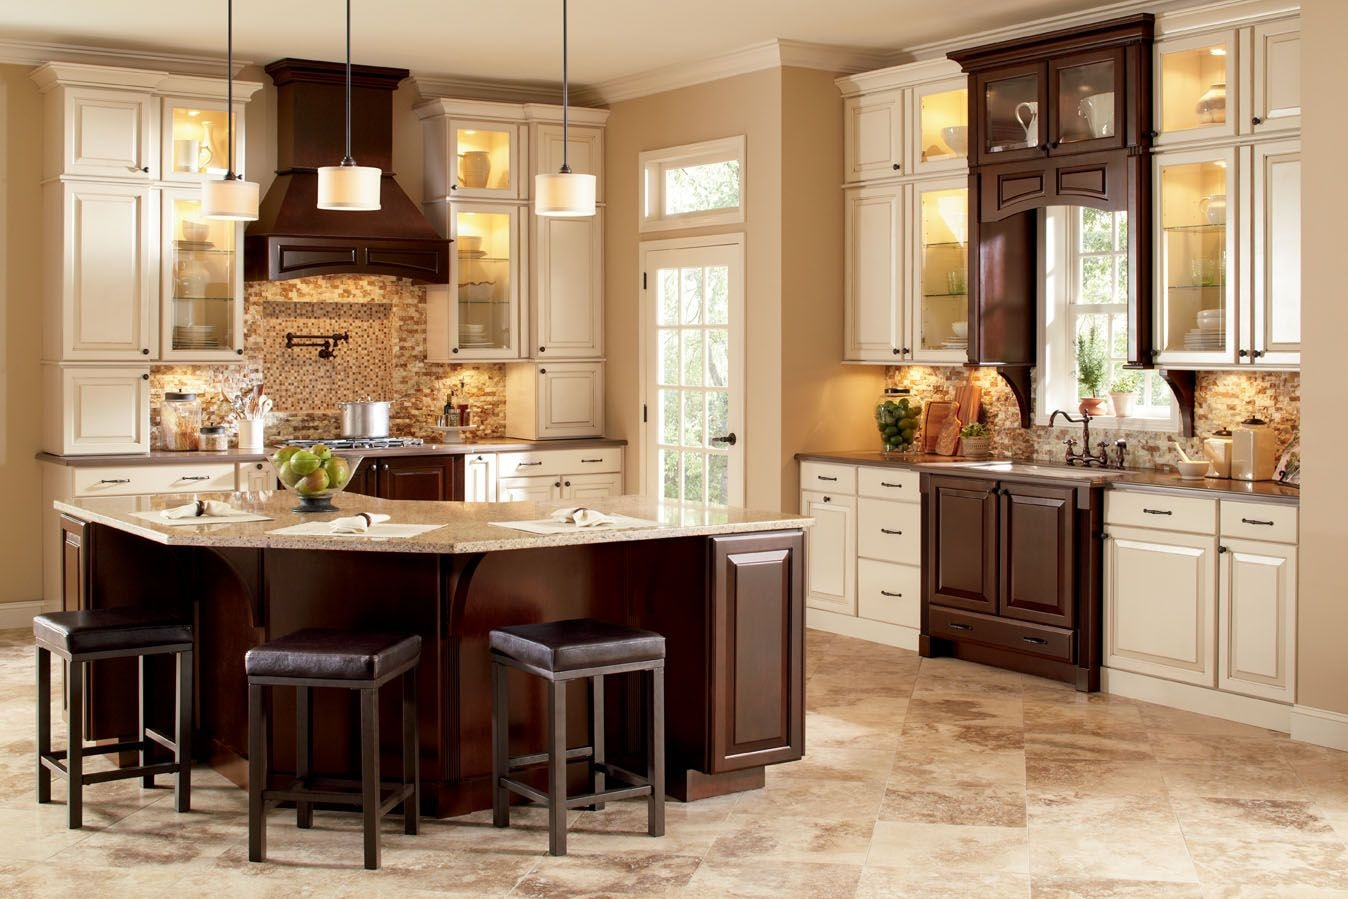 american woodmark kitchen cabinets sink faucet repair 2017 grasscloth wallpaper